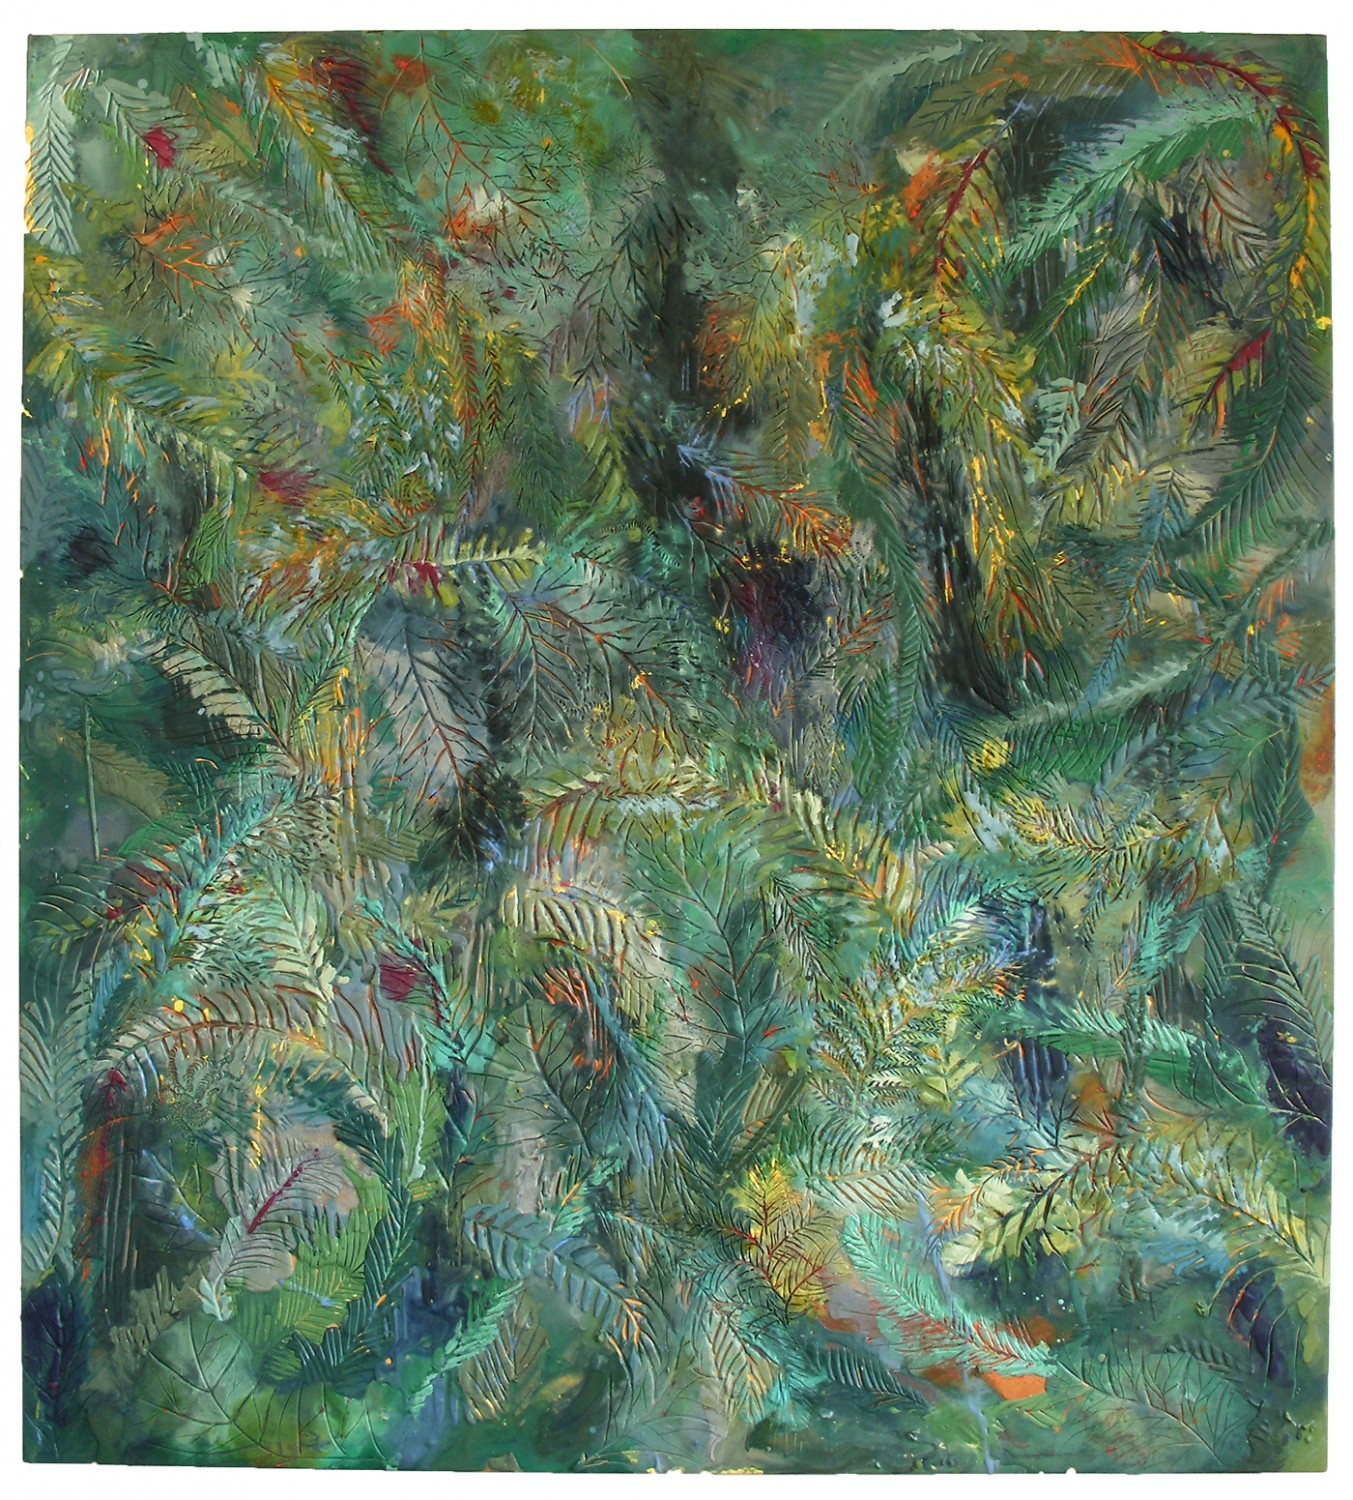 Fossil Forest, 2007, encaustic on panel, 66 x 60 inches